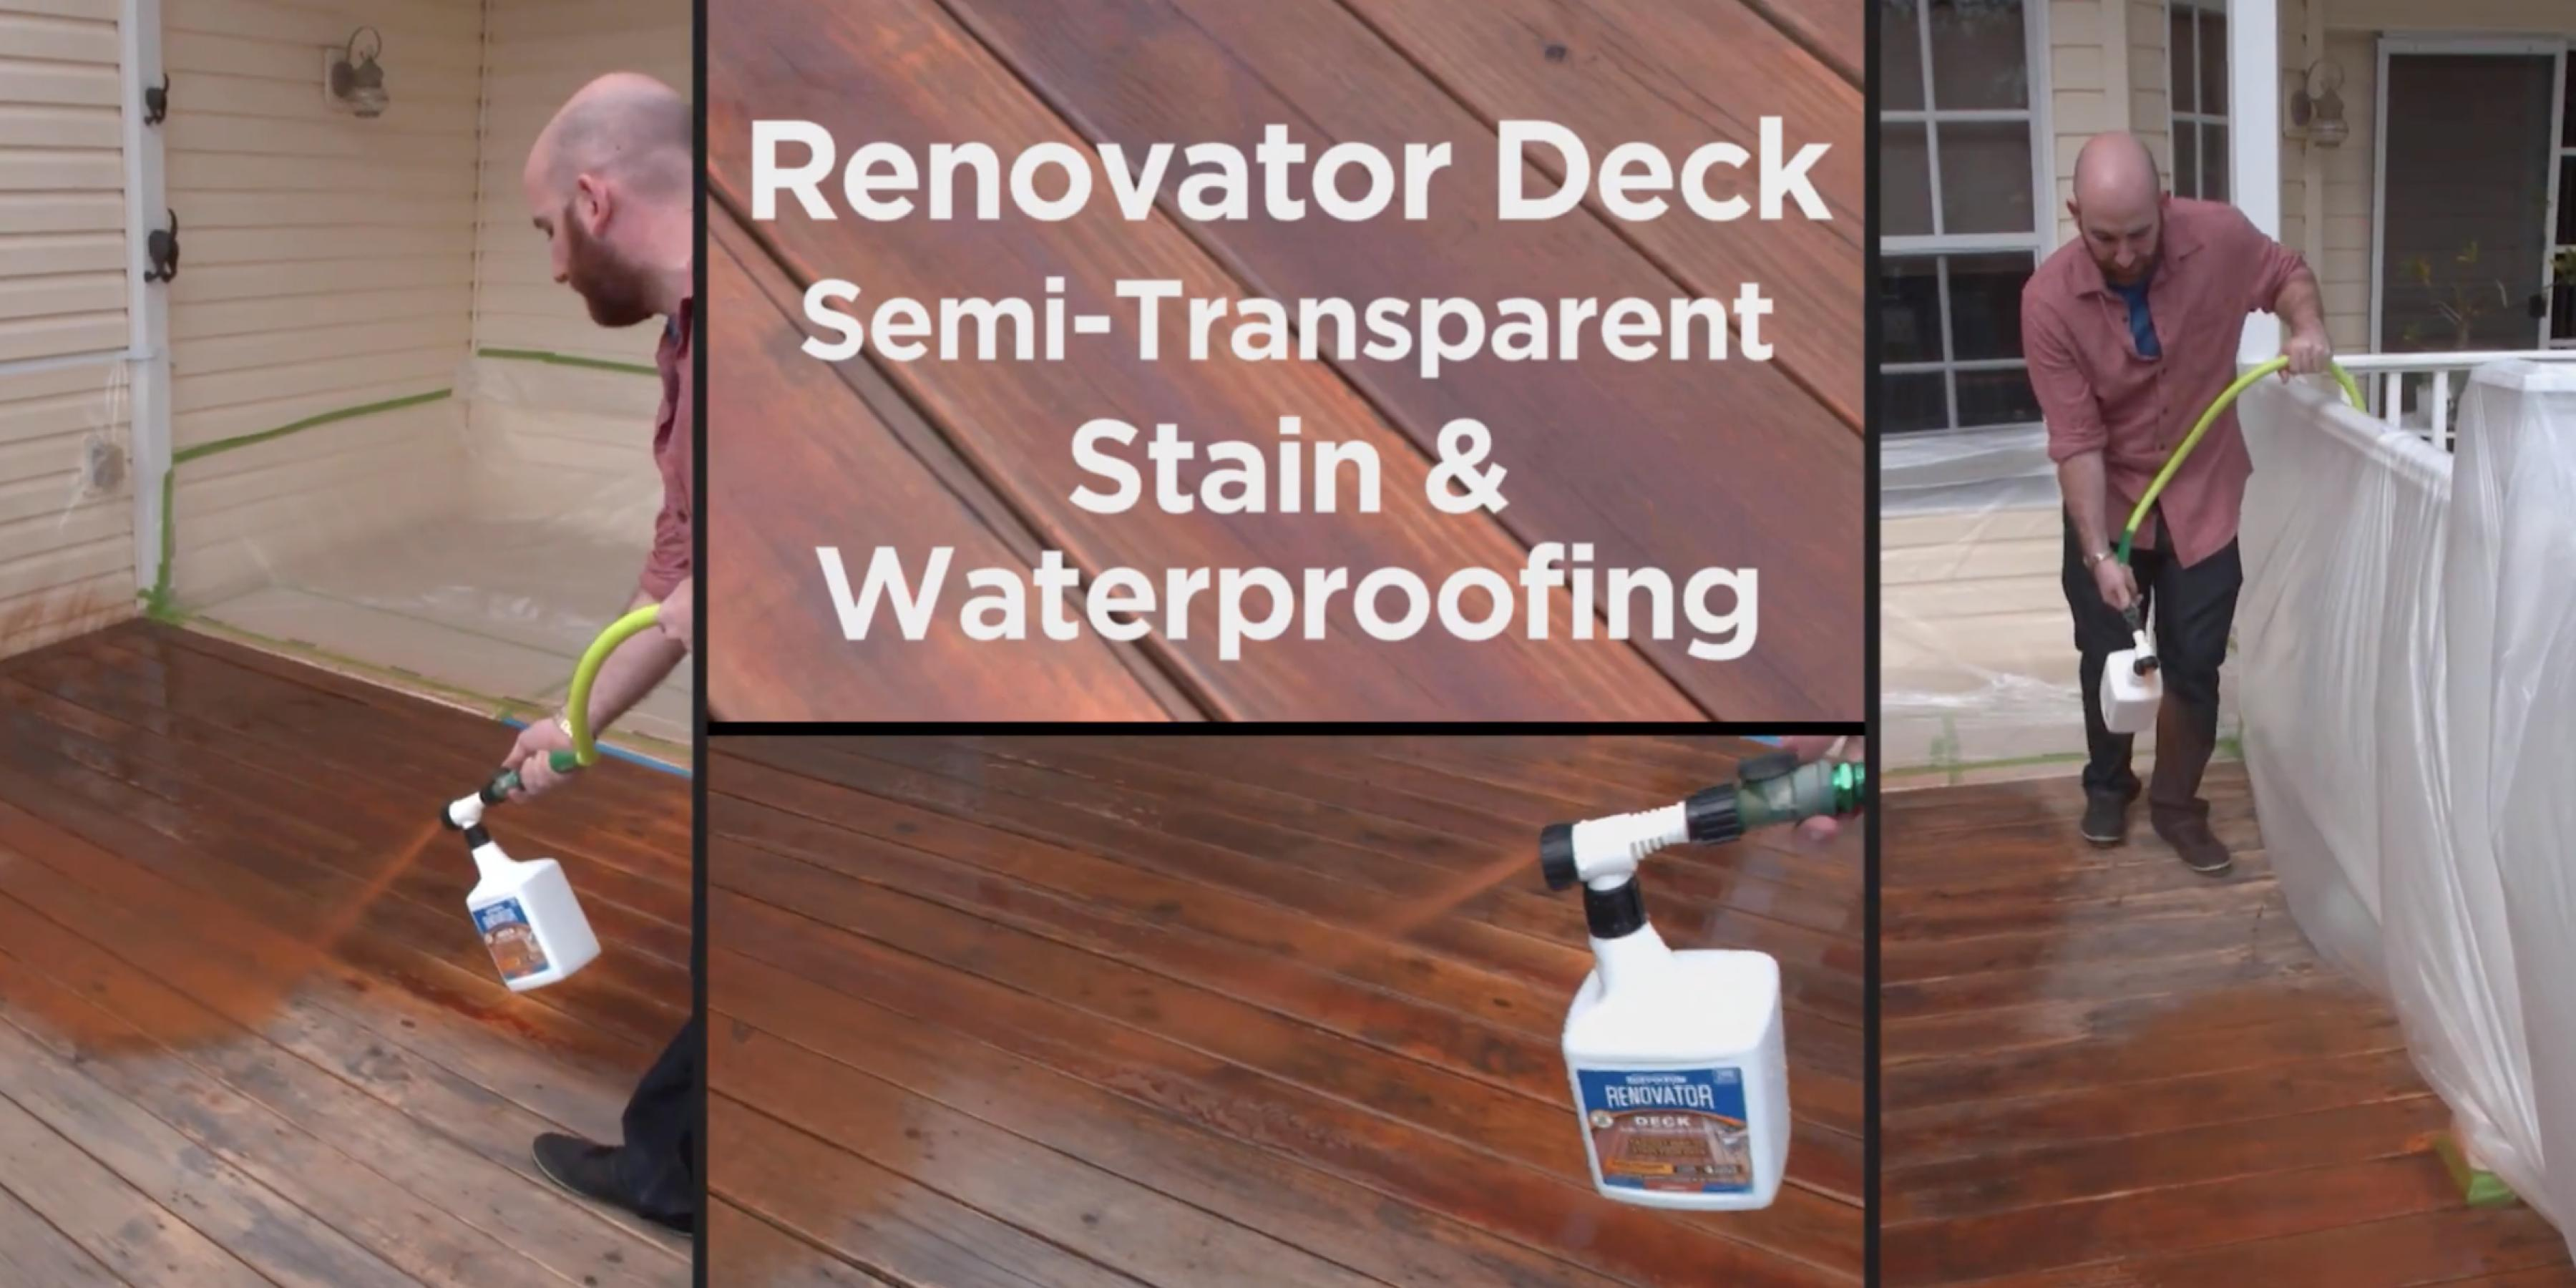 Deck Refinishing With Renovator Deck